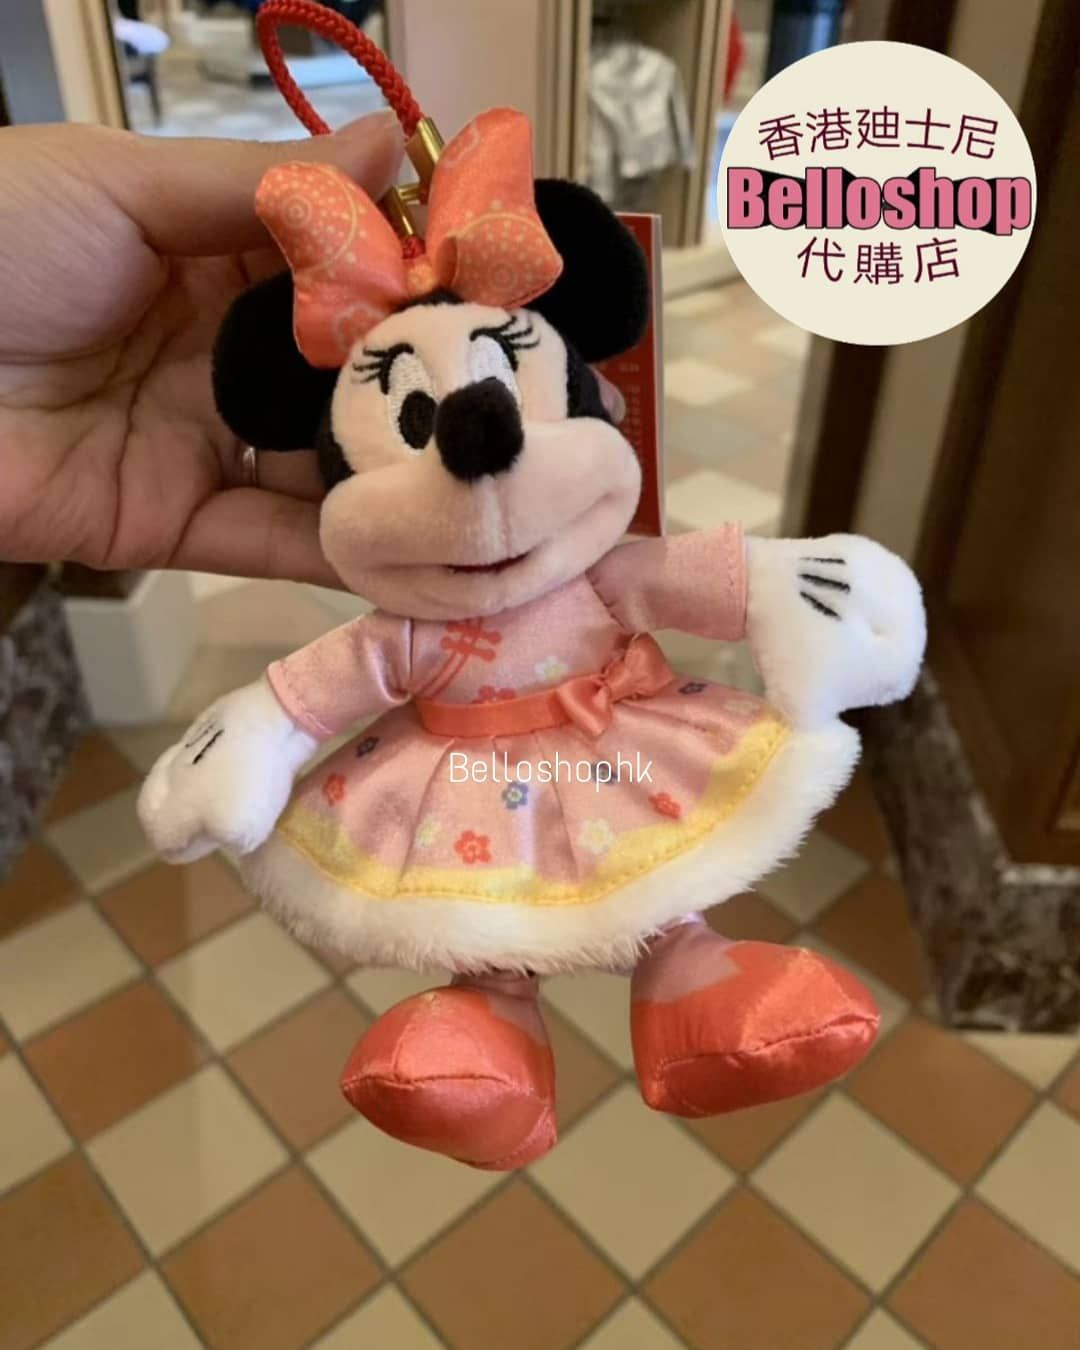 Minnie Chinese New Year 2019 Keychain Released At Shanghai Disney Resort 02 01 2019 Disney Shanghai Shanghai Disney Resort Disney